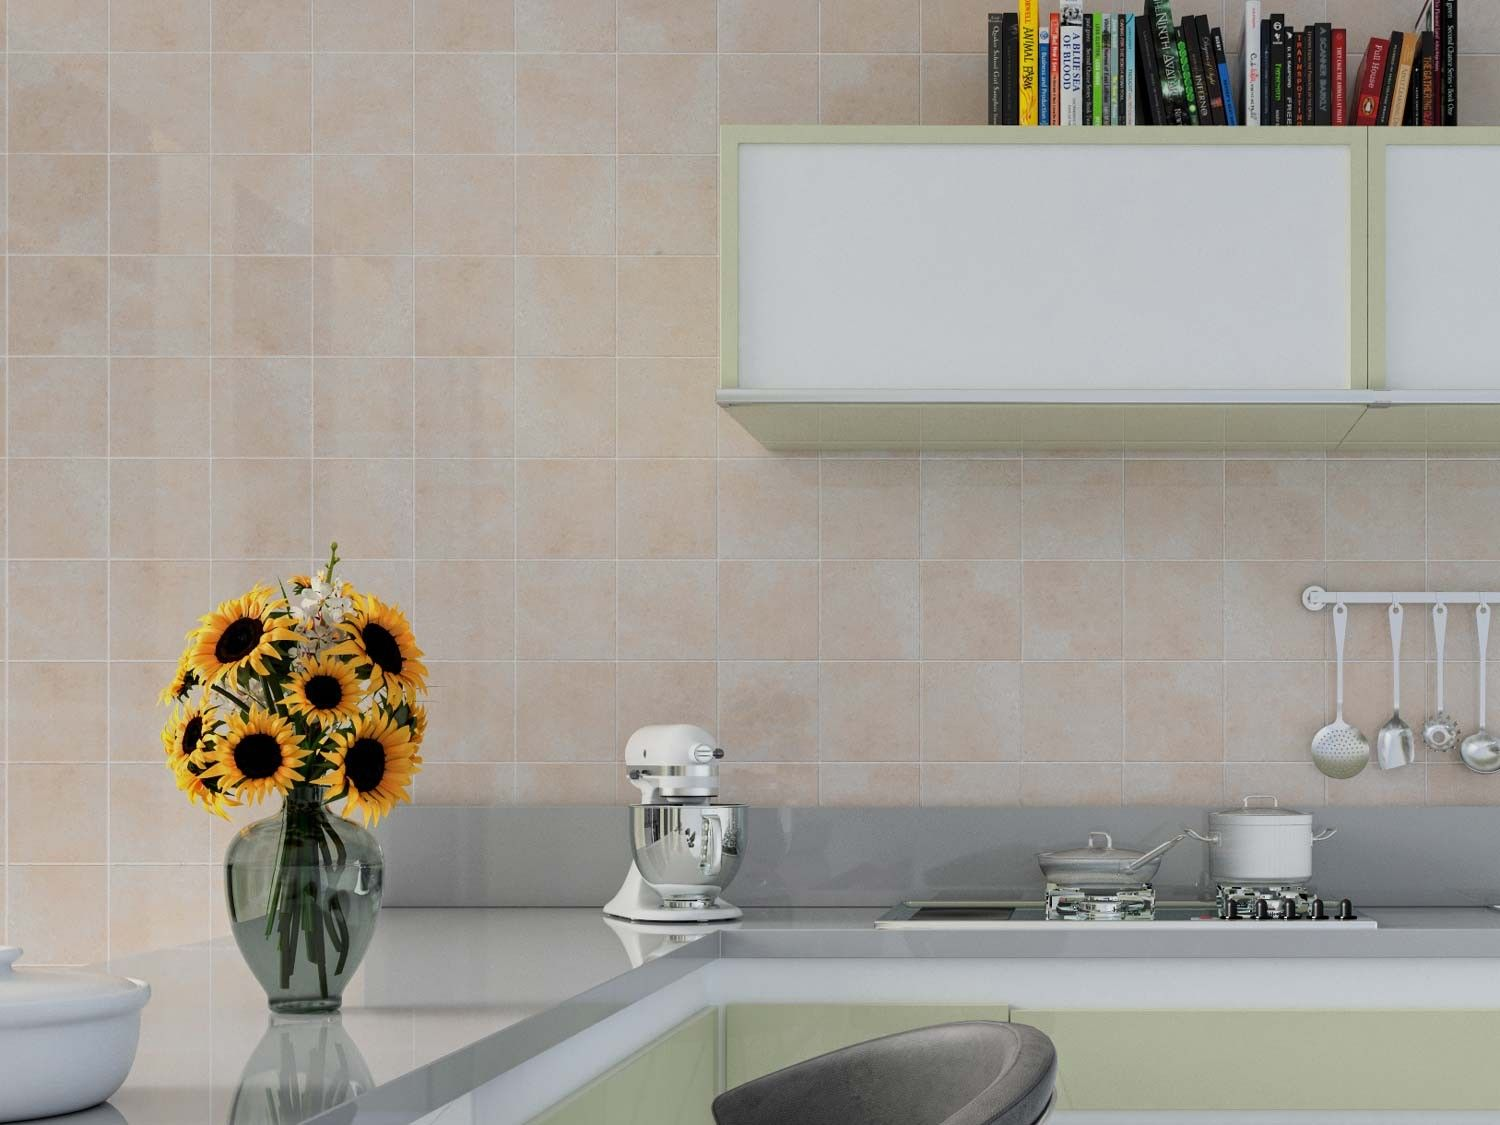 Ctm Kitchen Wall Tiles Images